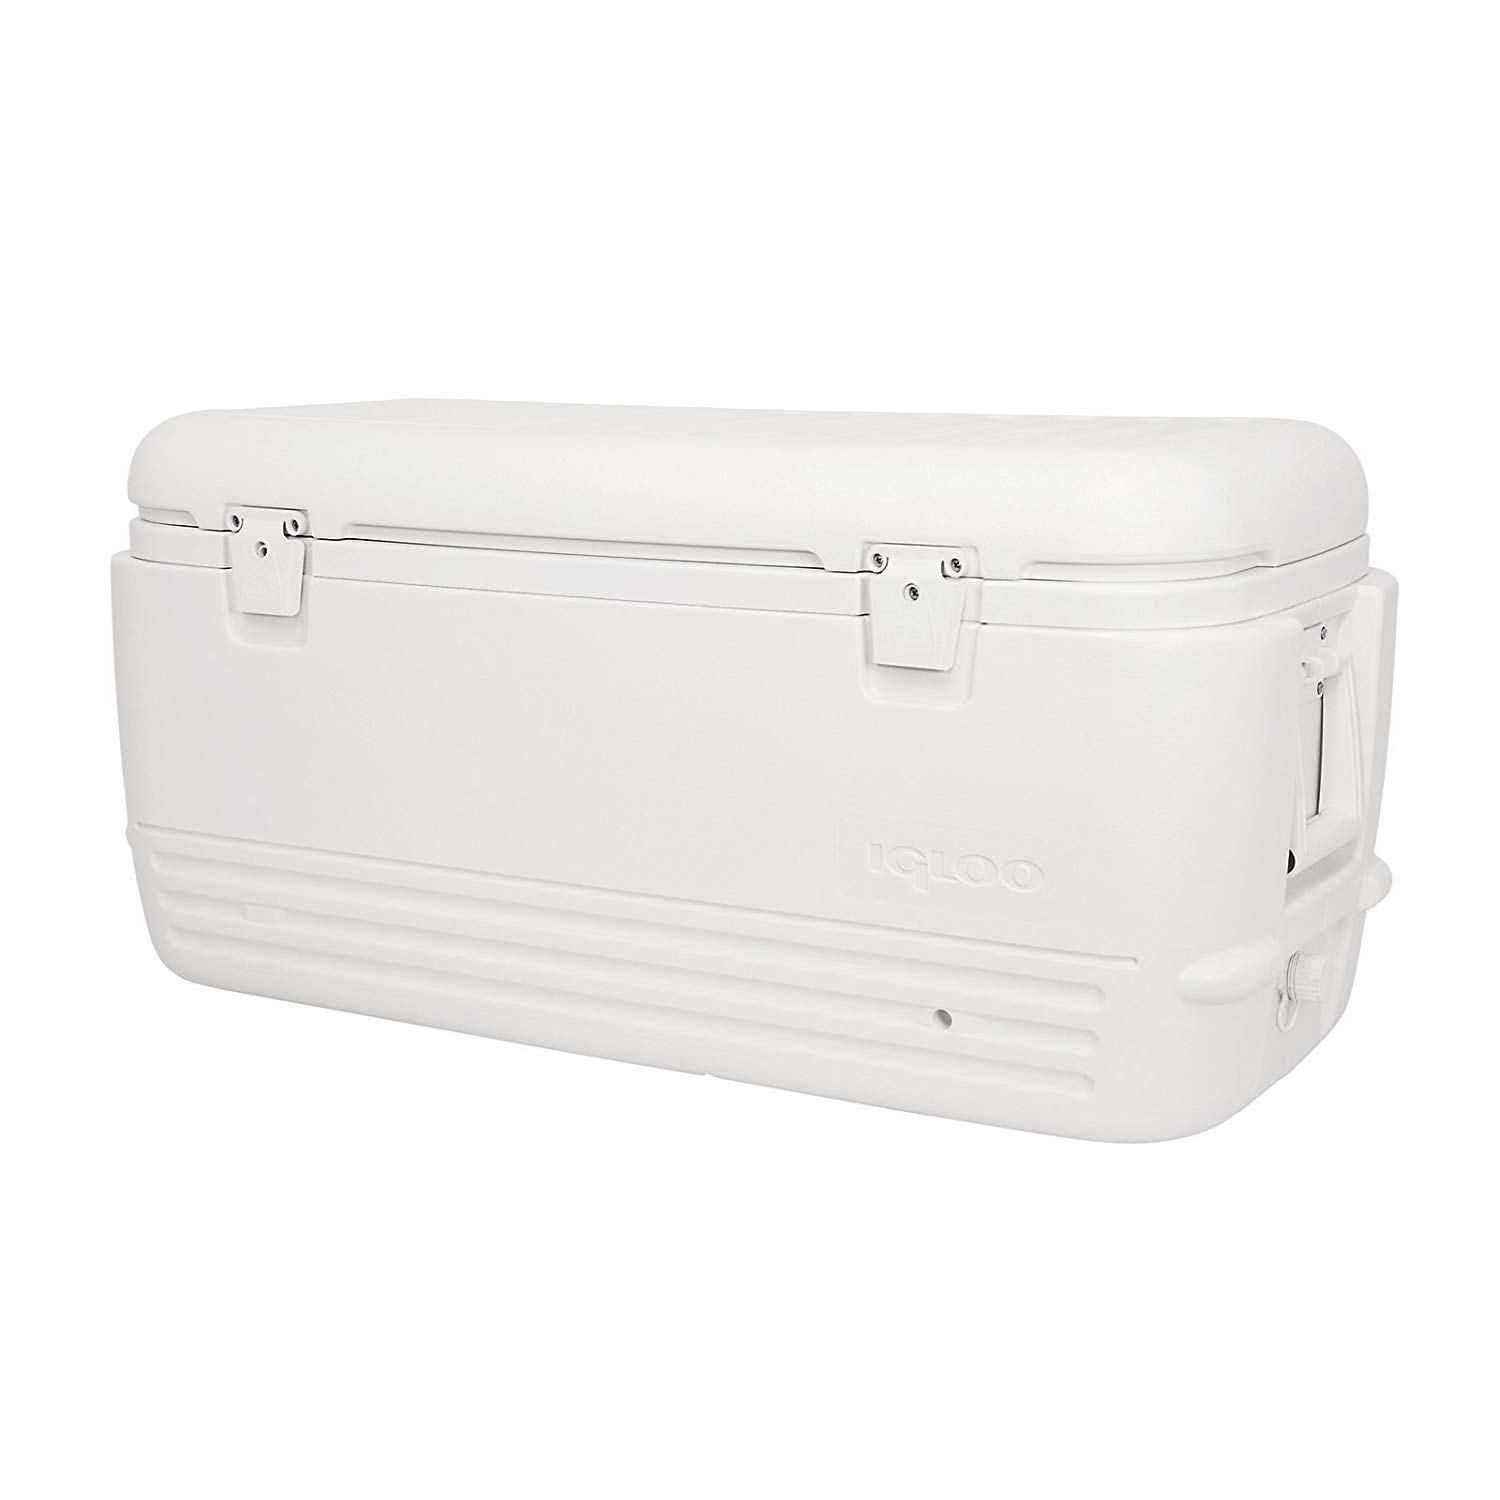 The Best Ice Chest Today: What To Get? 7